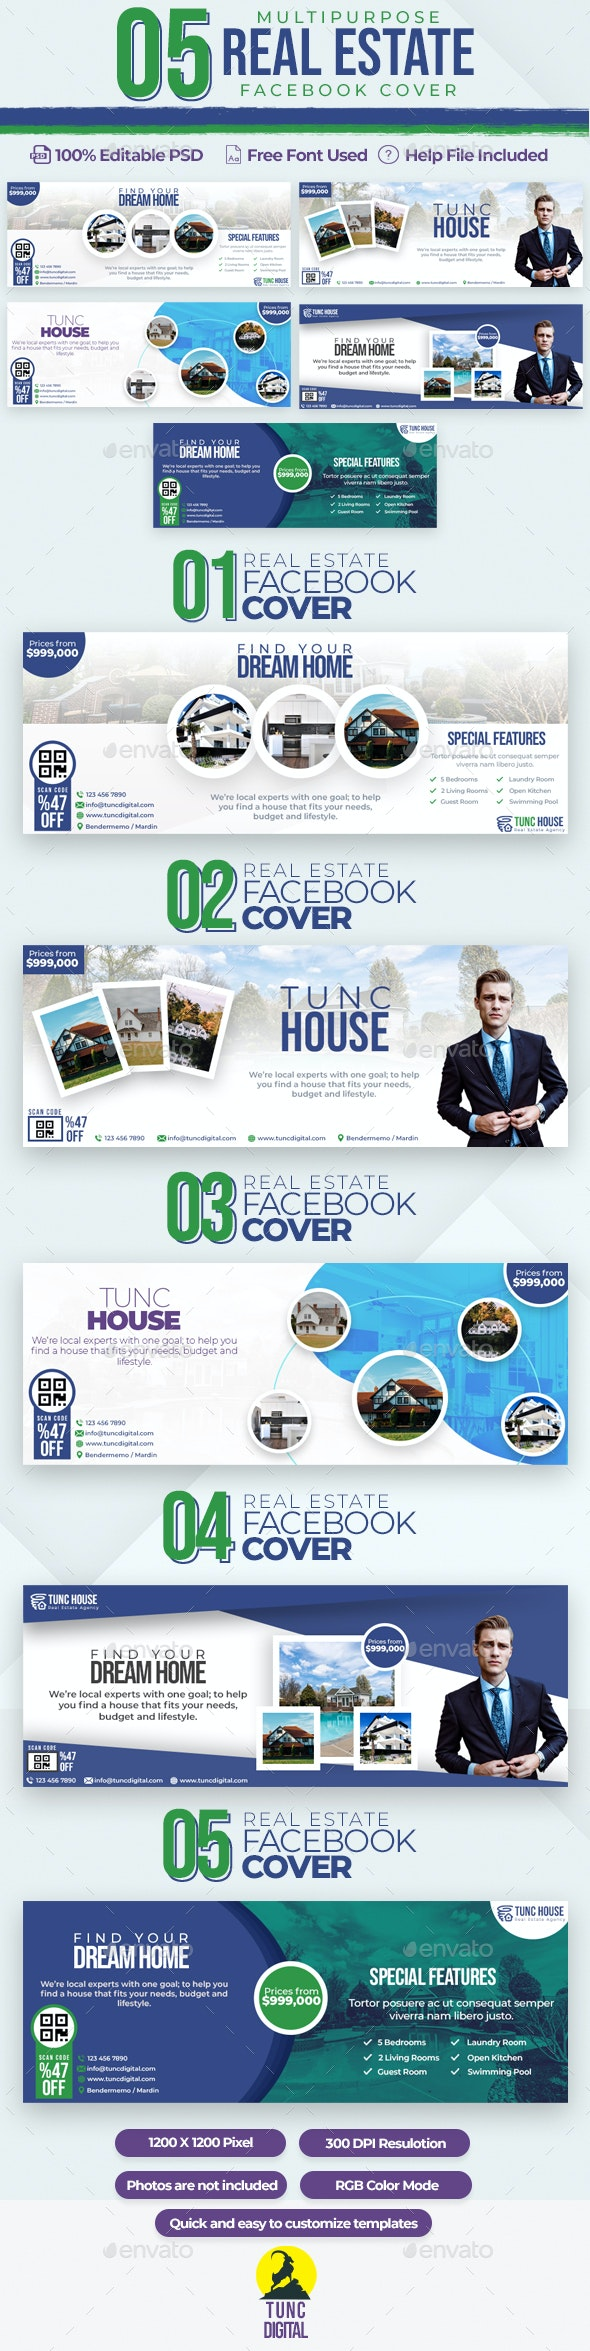 Real Estate 05 Facebook Cover - Facebook Timeline Covers Social Media